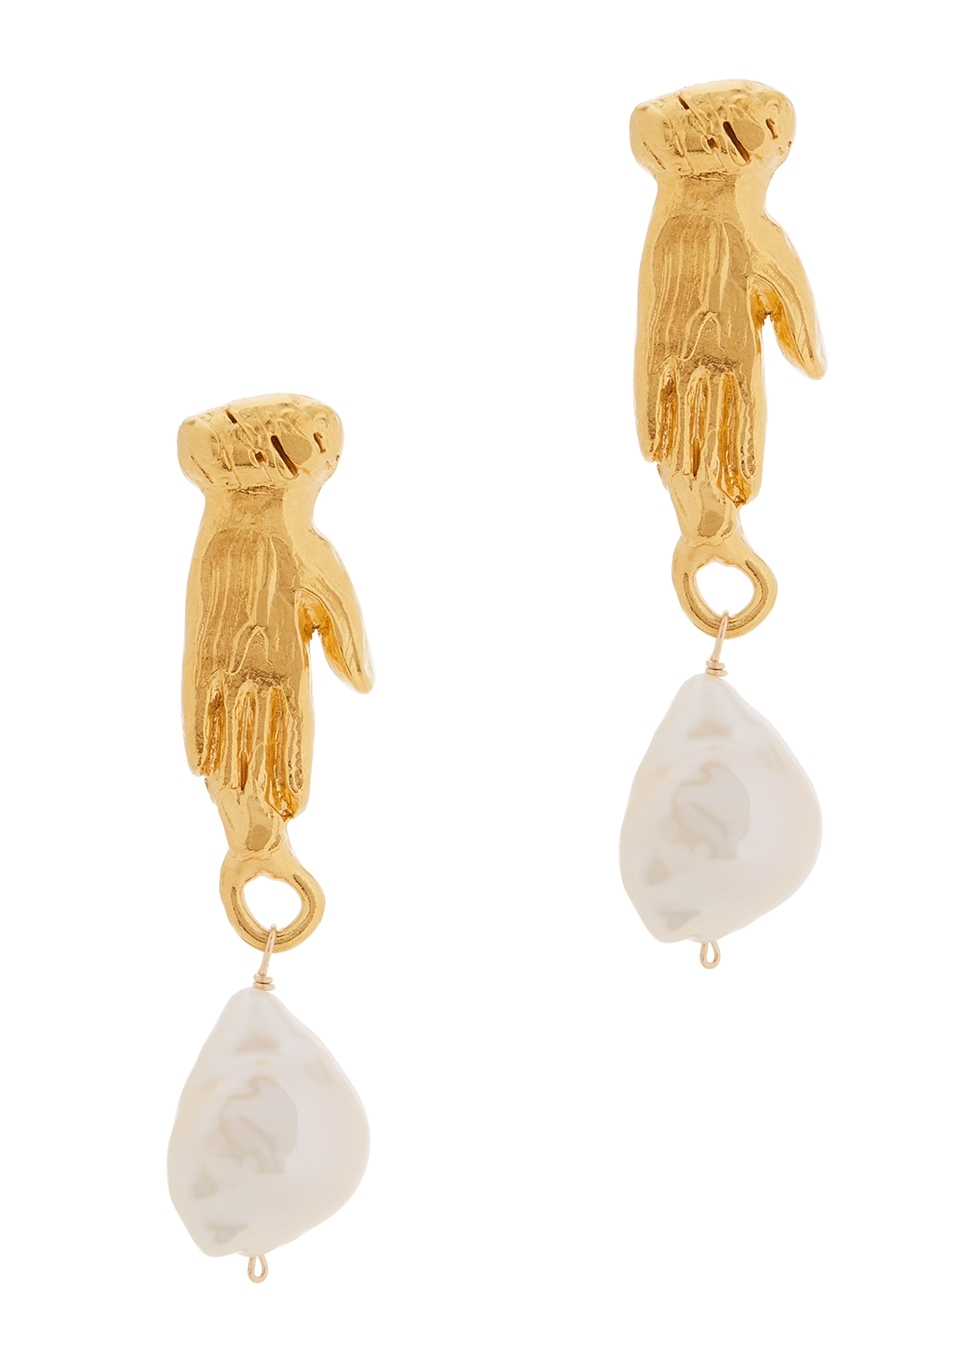 0d9abb5a1 Women's Earrings - Designer Jewellery - Harvey Nichols